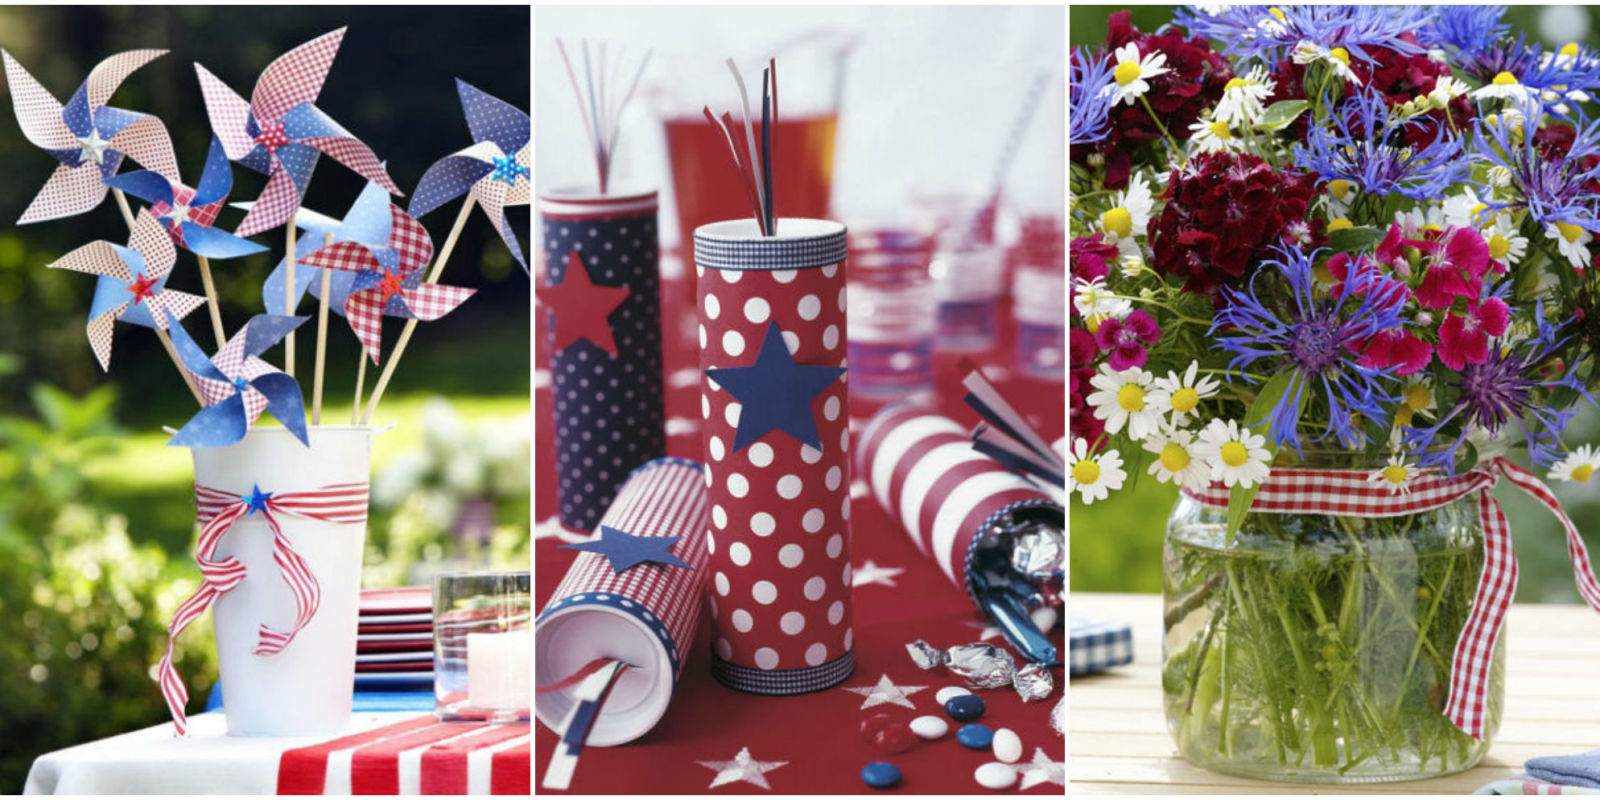 Decorating For A Party 30+ diy 4th of july decorations 2017 - patriotic fourth of july